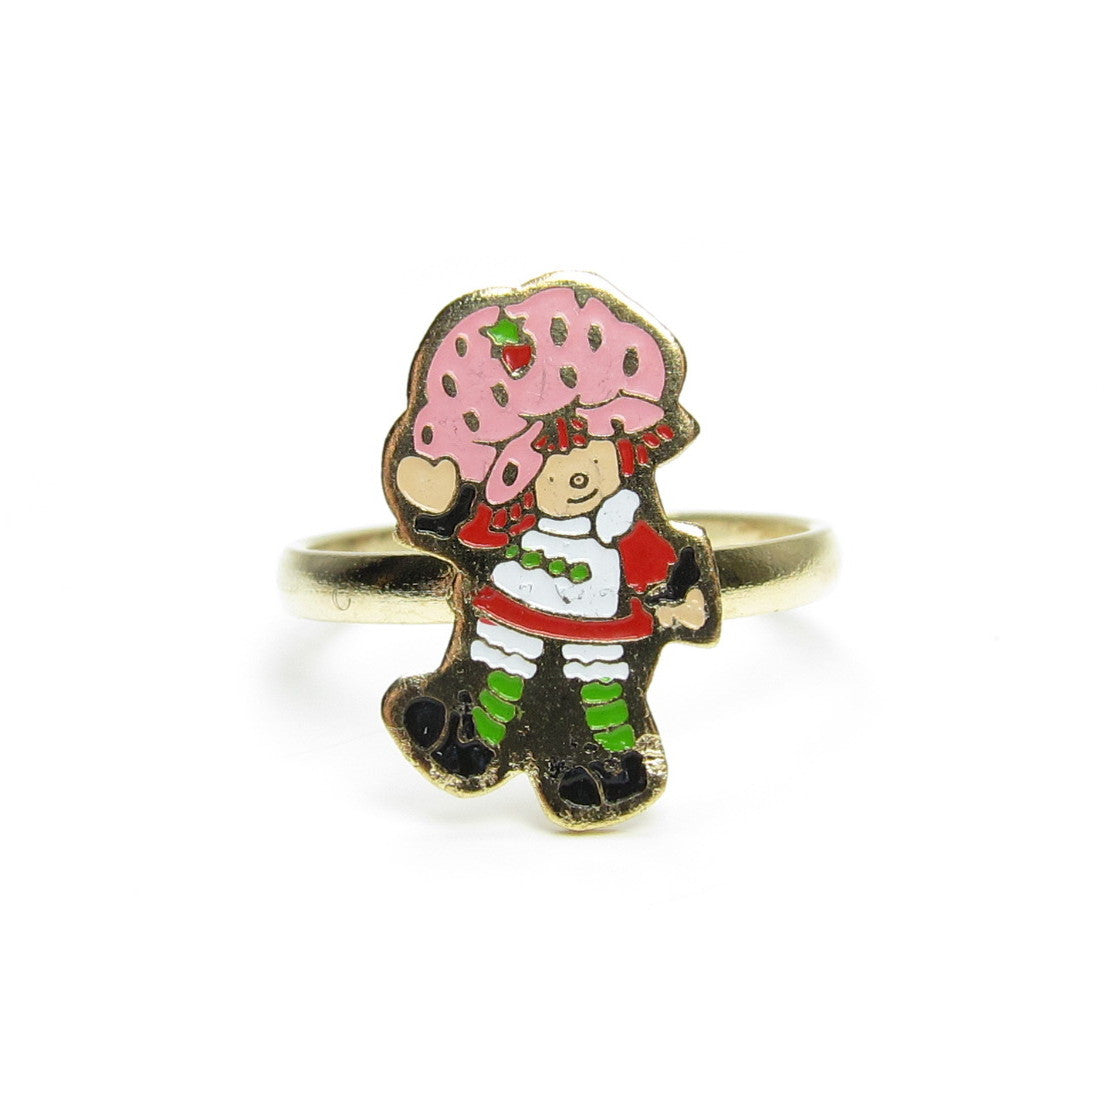 Strawberry Shortcake enamel children's ring on gold band